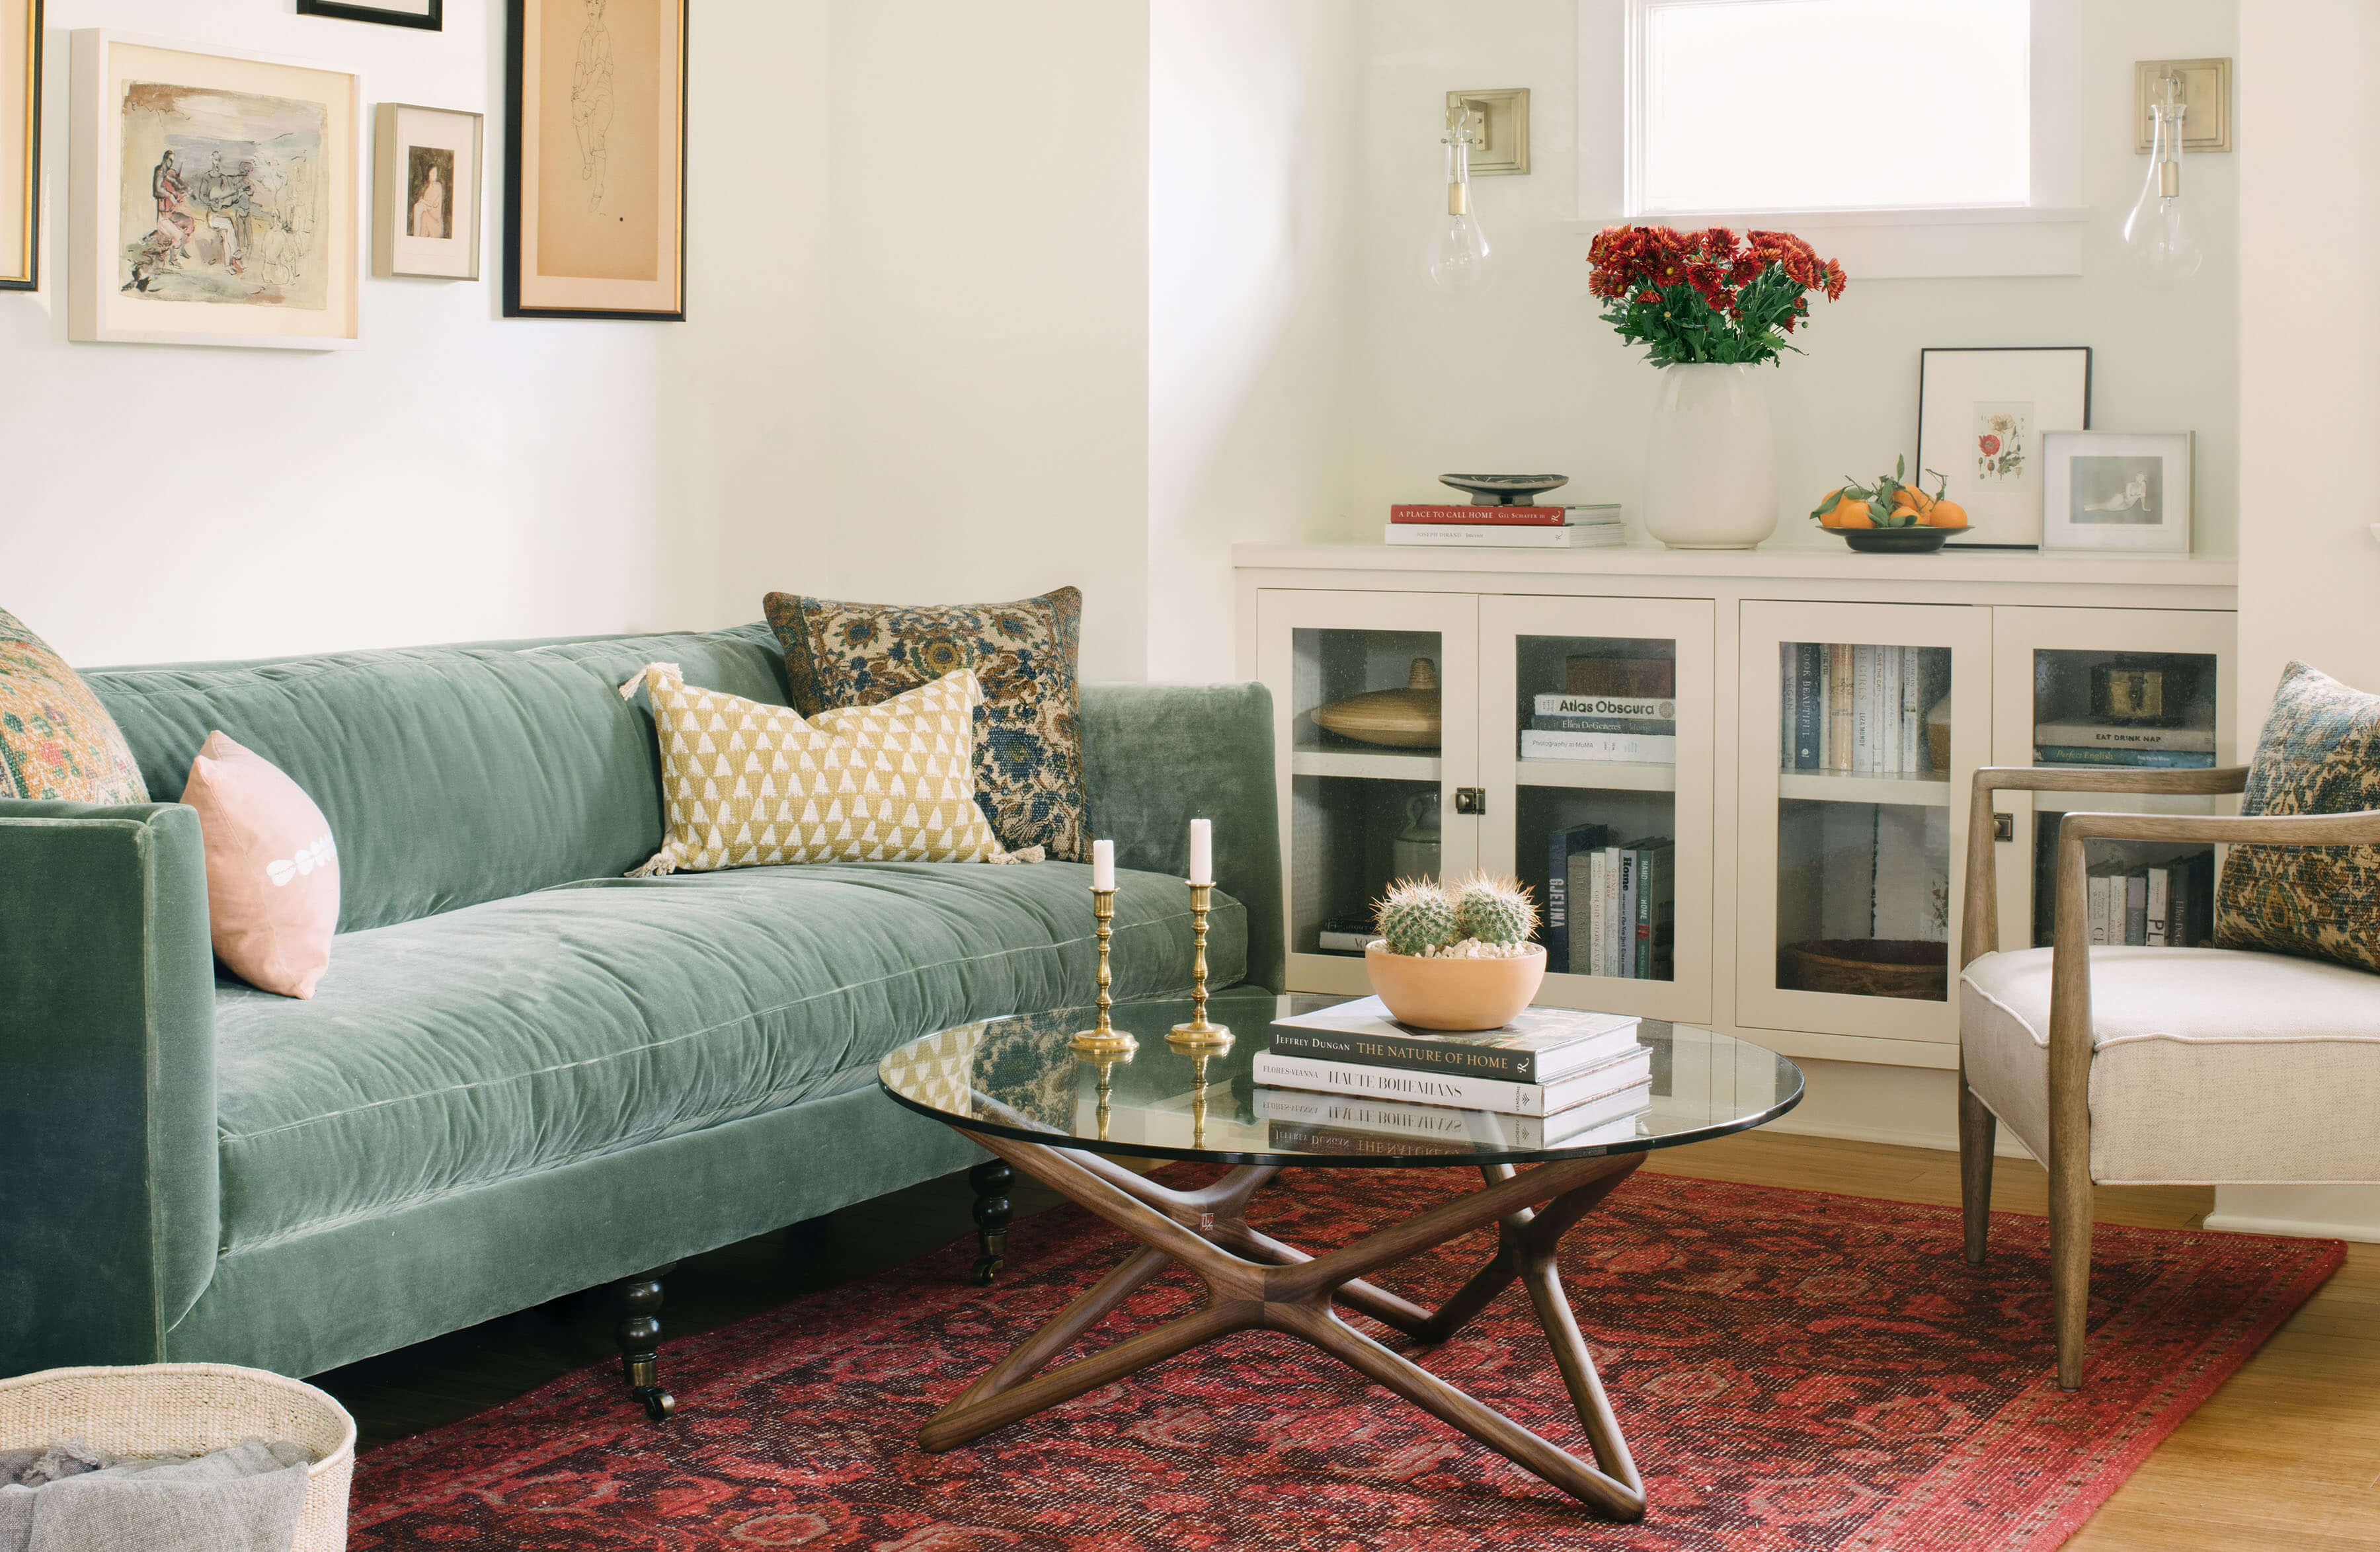 GINNY_MACDONALD_FLORIANA_LIMA_LIVING_ROOM_FEATURED_IMAGE 2